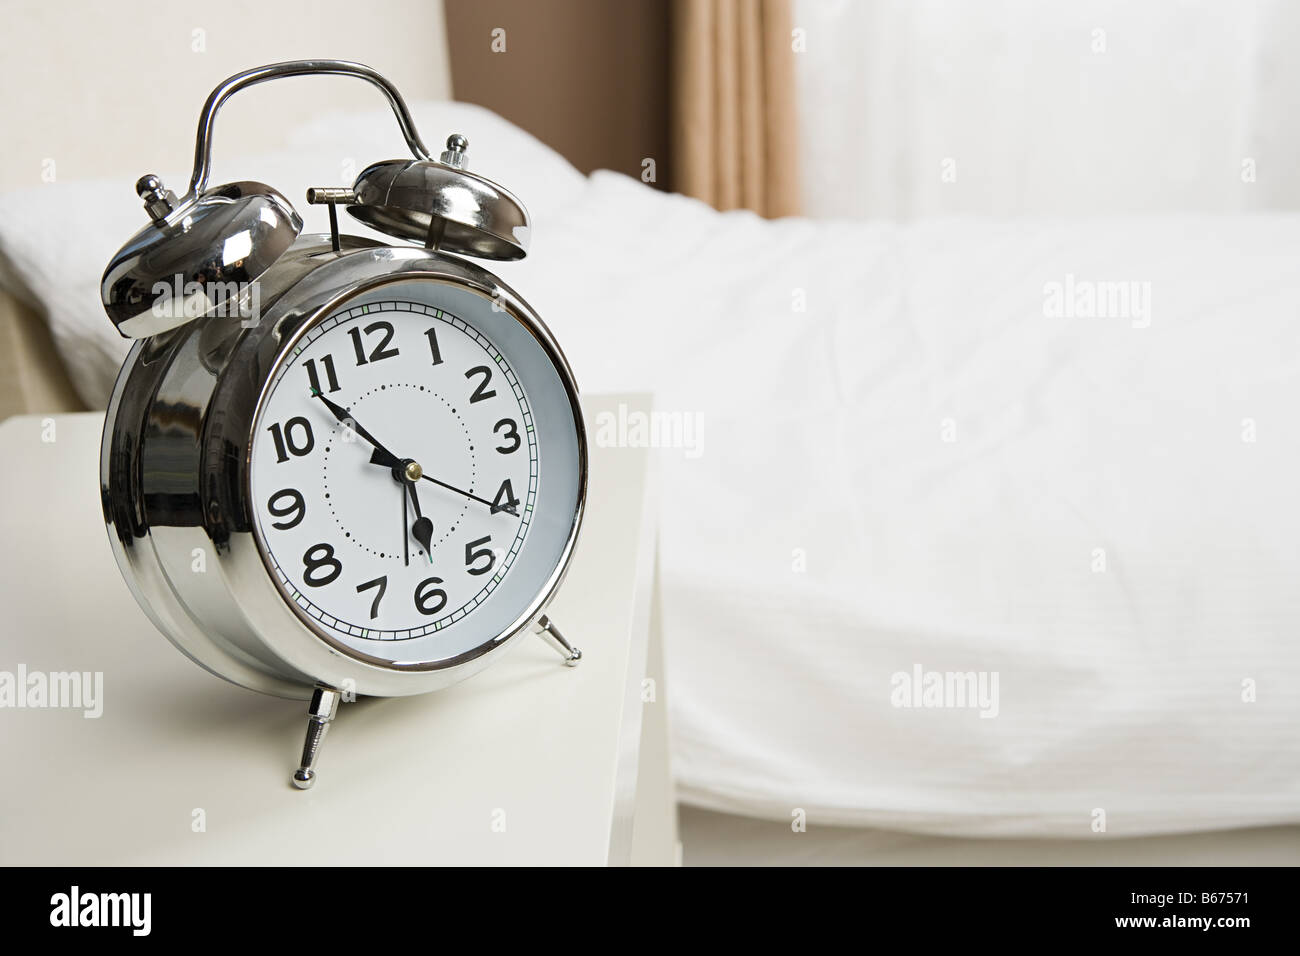 Alarm clock by bed Stock Photo